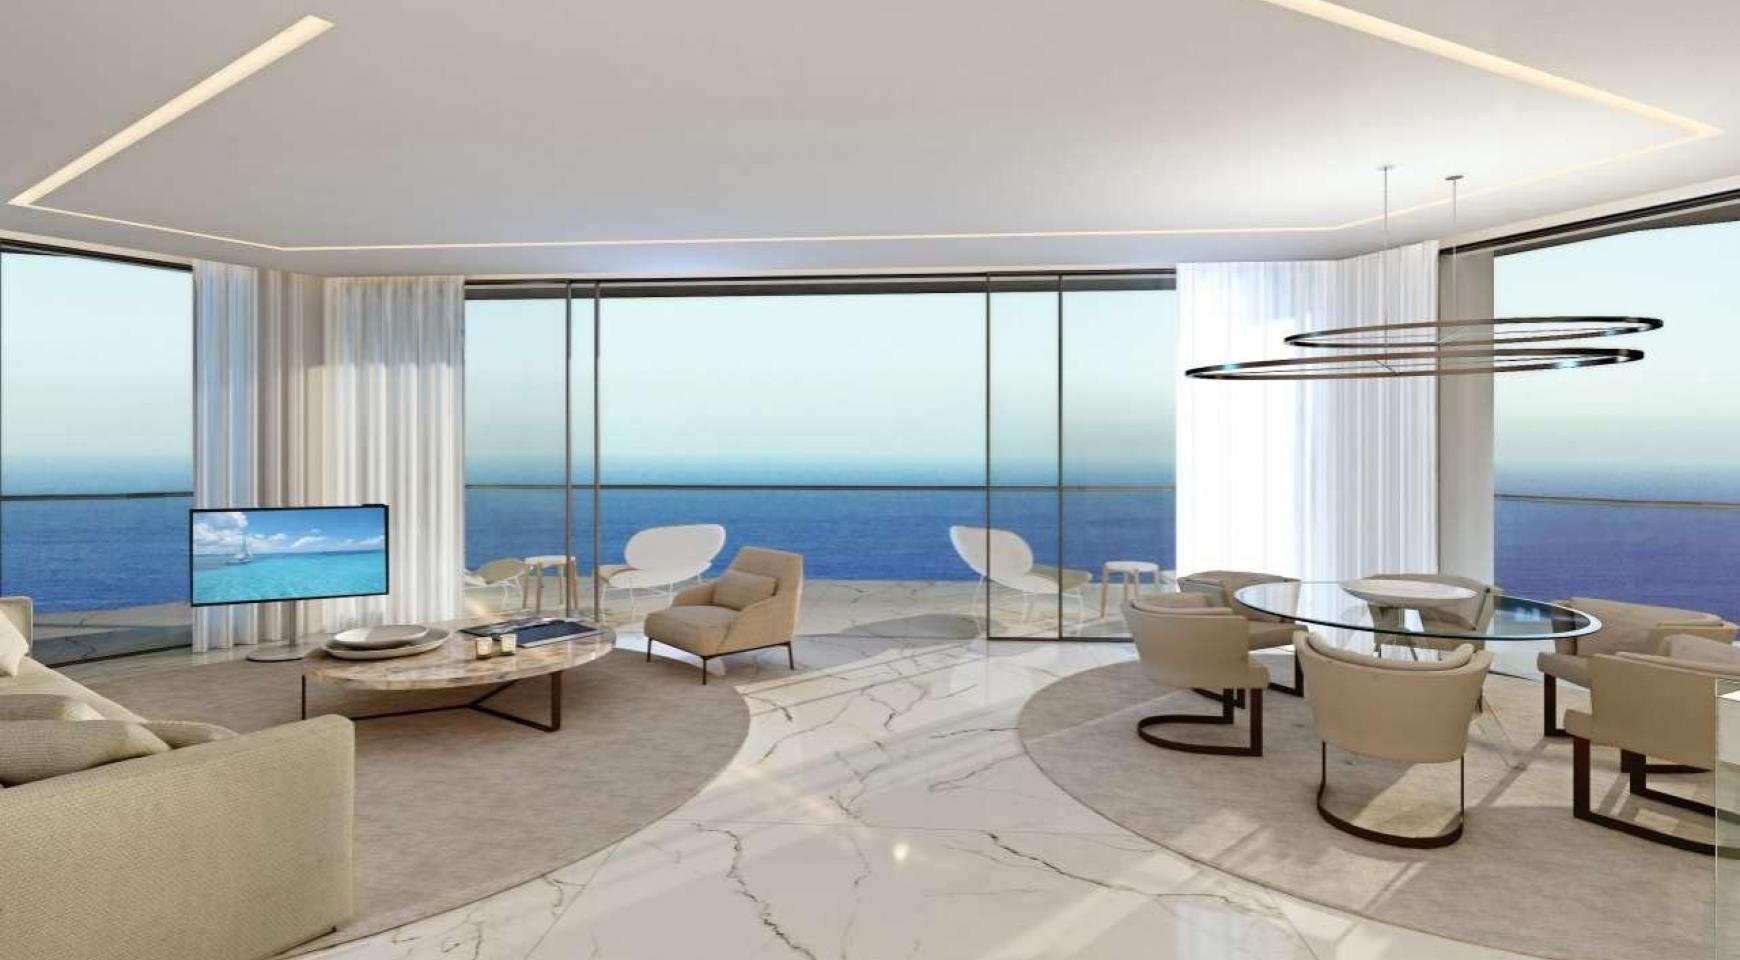 Luxury 2 Bedroom Apartment in a New Project by the Sea in the City Centre - 1